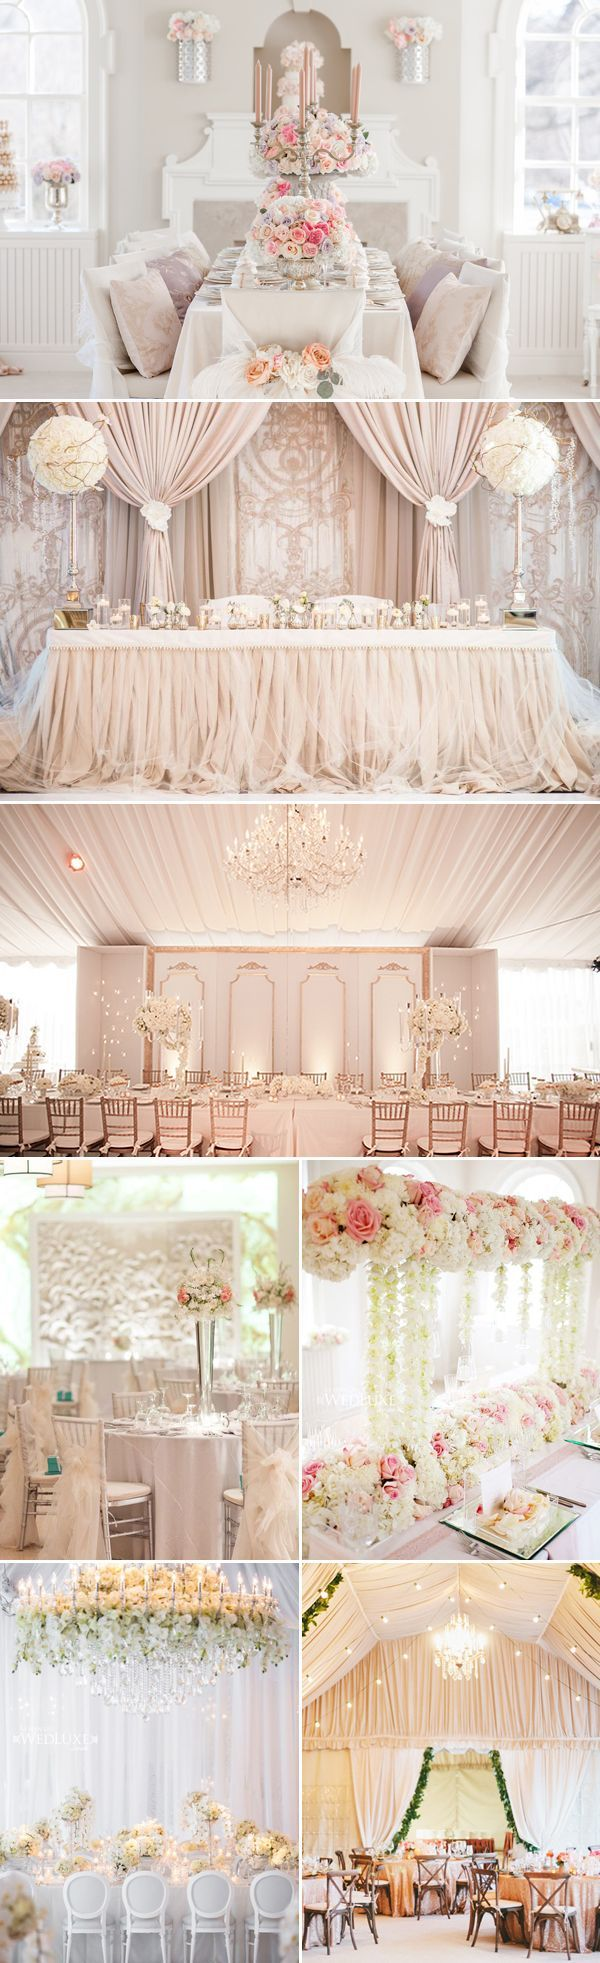 30 Stunning Luxury Indoor Reception Decoration Ideas You don't Want to Miss! | Praisewedding